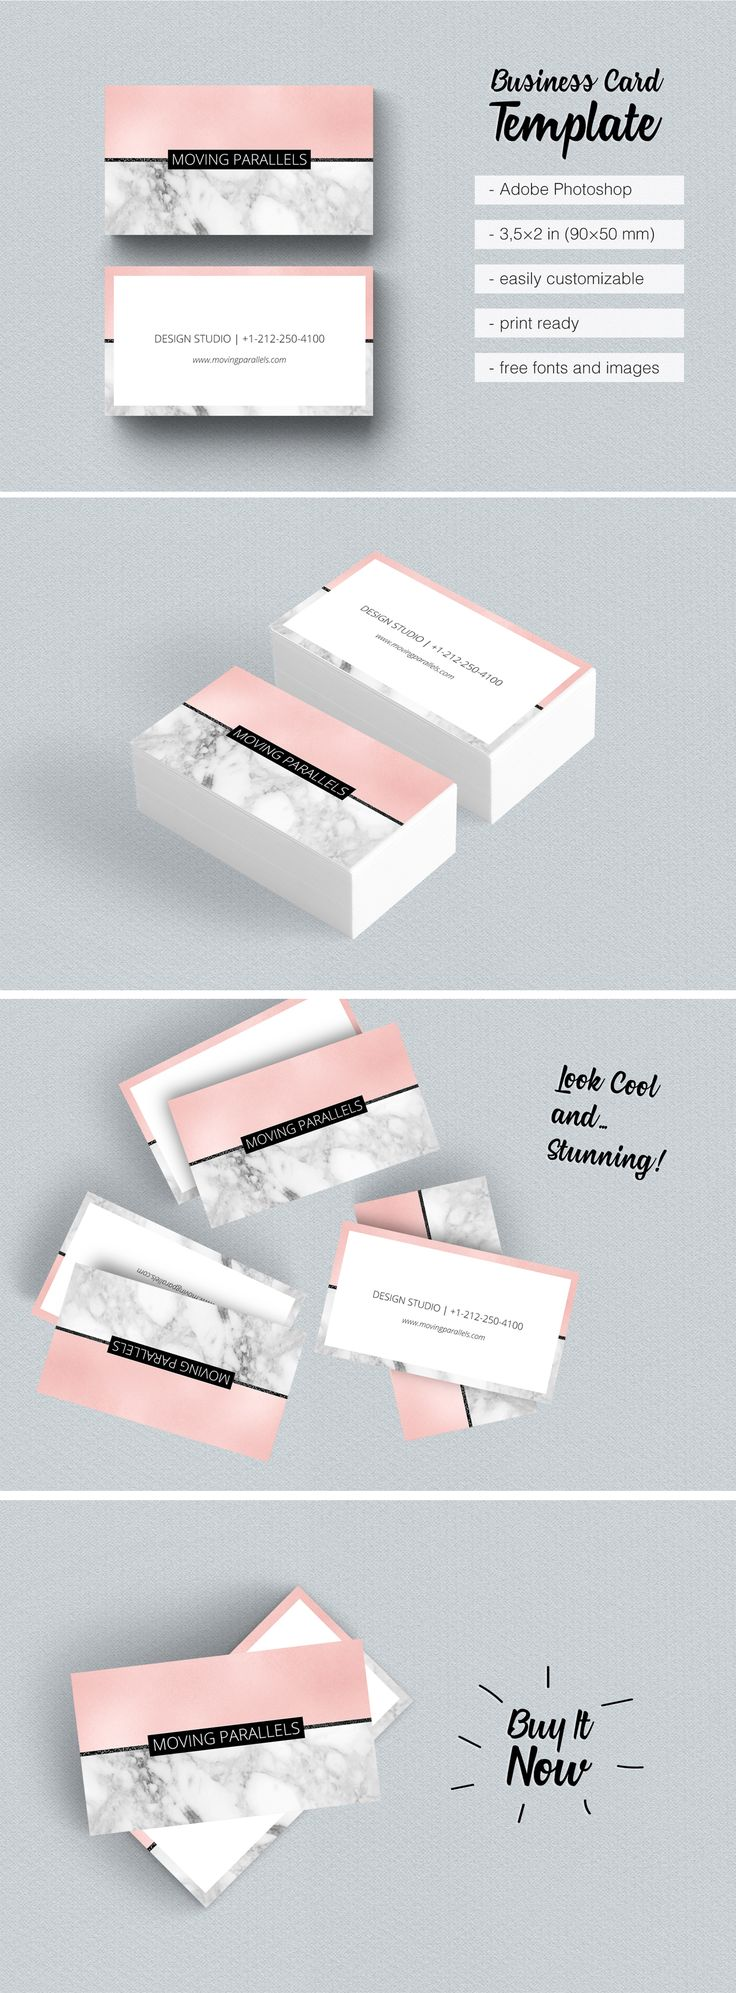 Best 25+ Visit cards ideas on Pinterest | Free business cards ...